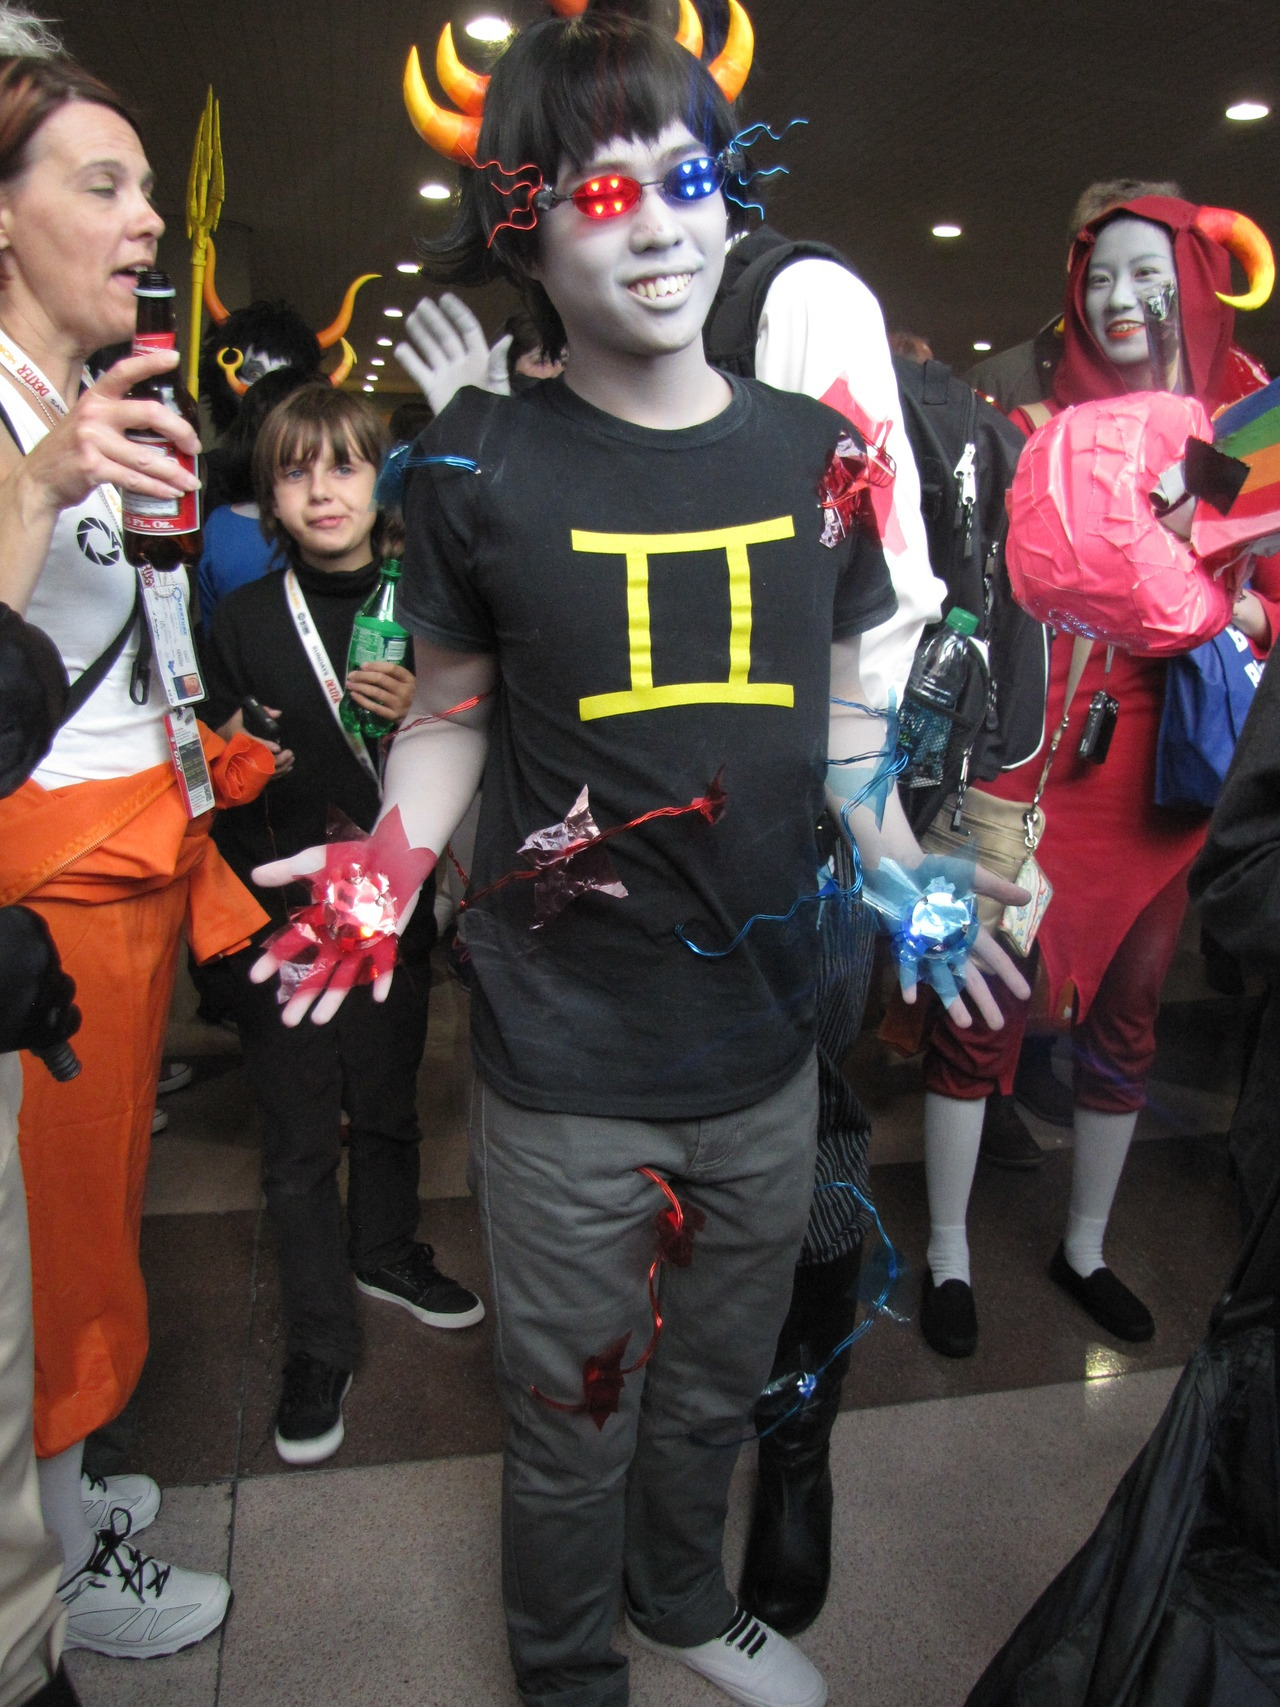 ectobiologists:  other pictures from nycc (homestuck rel) that i'm just now putting up haaaa oops sorry! if you're in these pictures please shoot me a message so i can credit you!